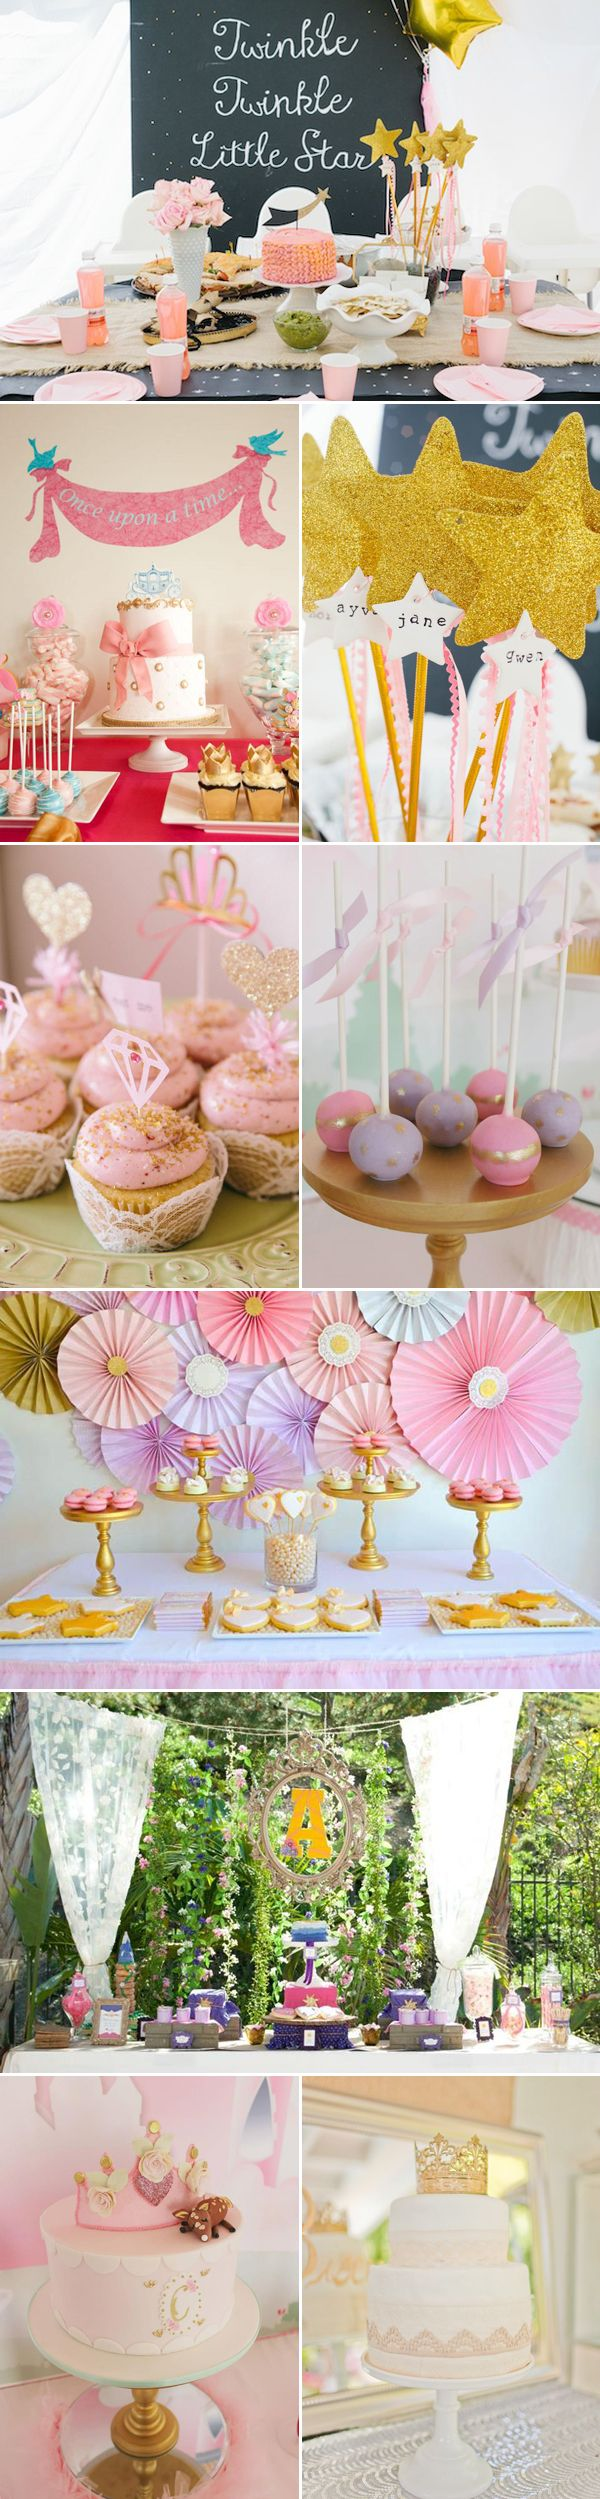 Adorable Princess-Themed Party Ideas - glam